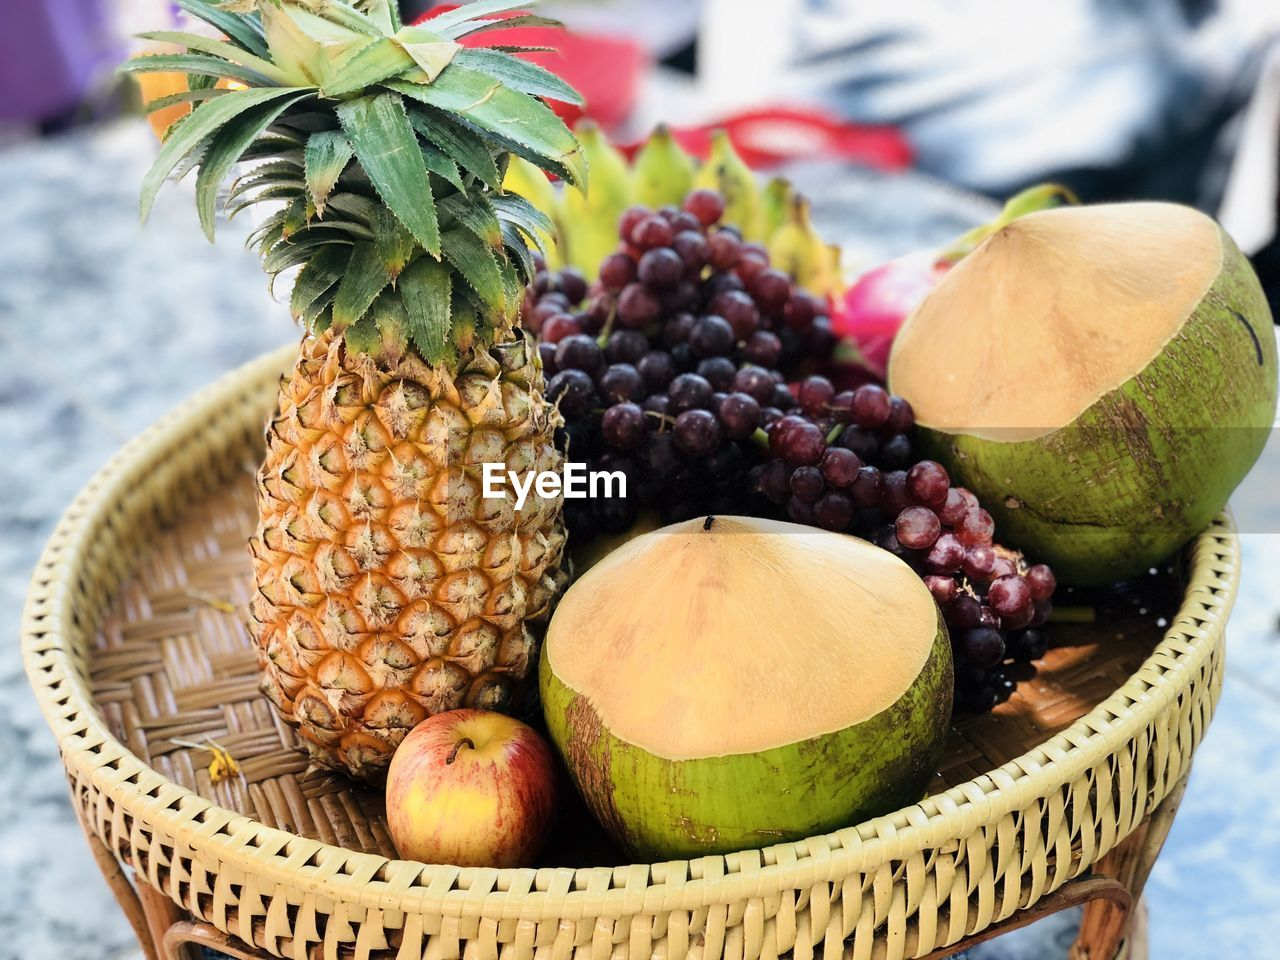 fruit, healthy eating, food and drink, food, pineapple, wellbeing, basket, tropical fruit, freshness, container, still life, focus on foreground, close-up, no people, variation, choice, banana, wicker, day, green color, ripe, lychee, orange